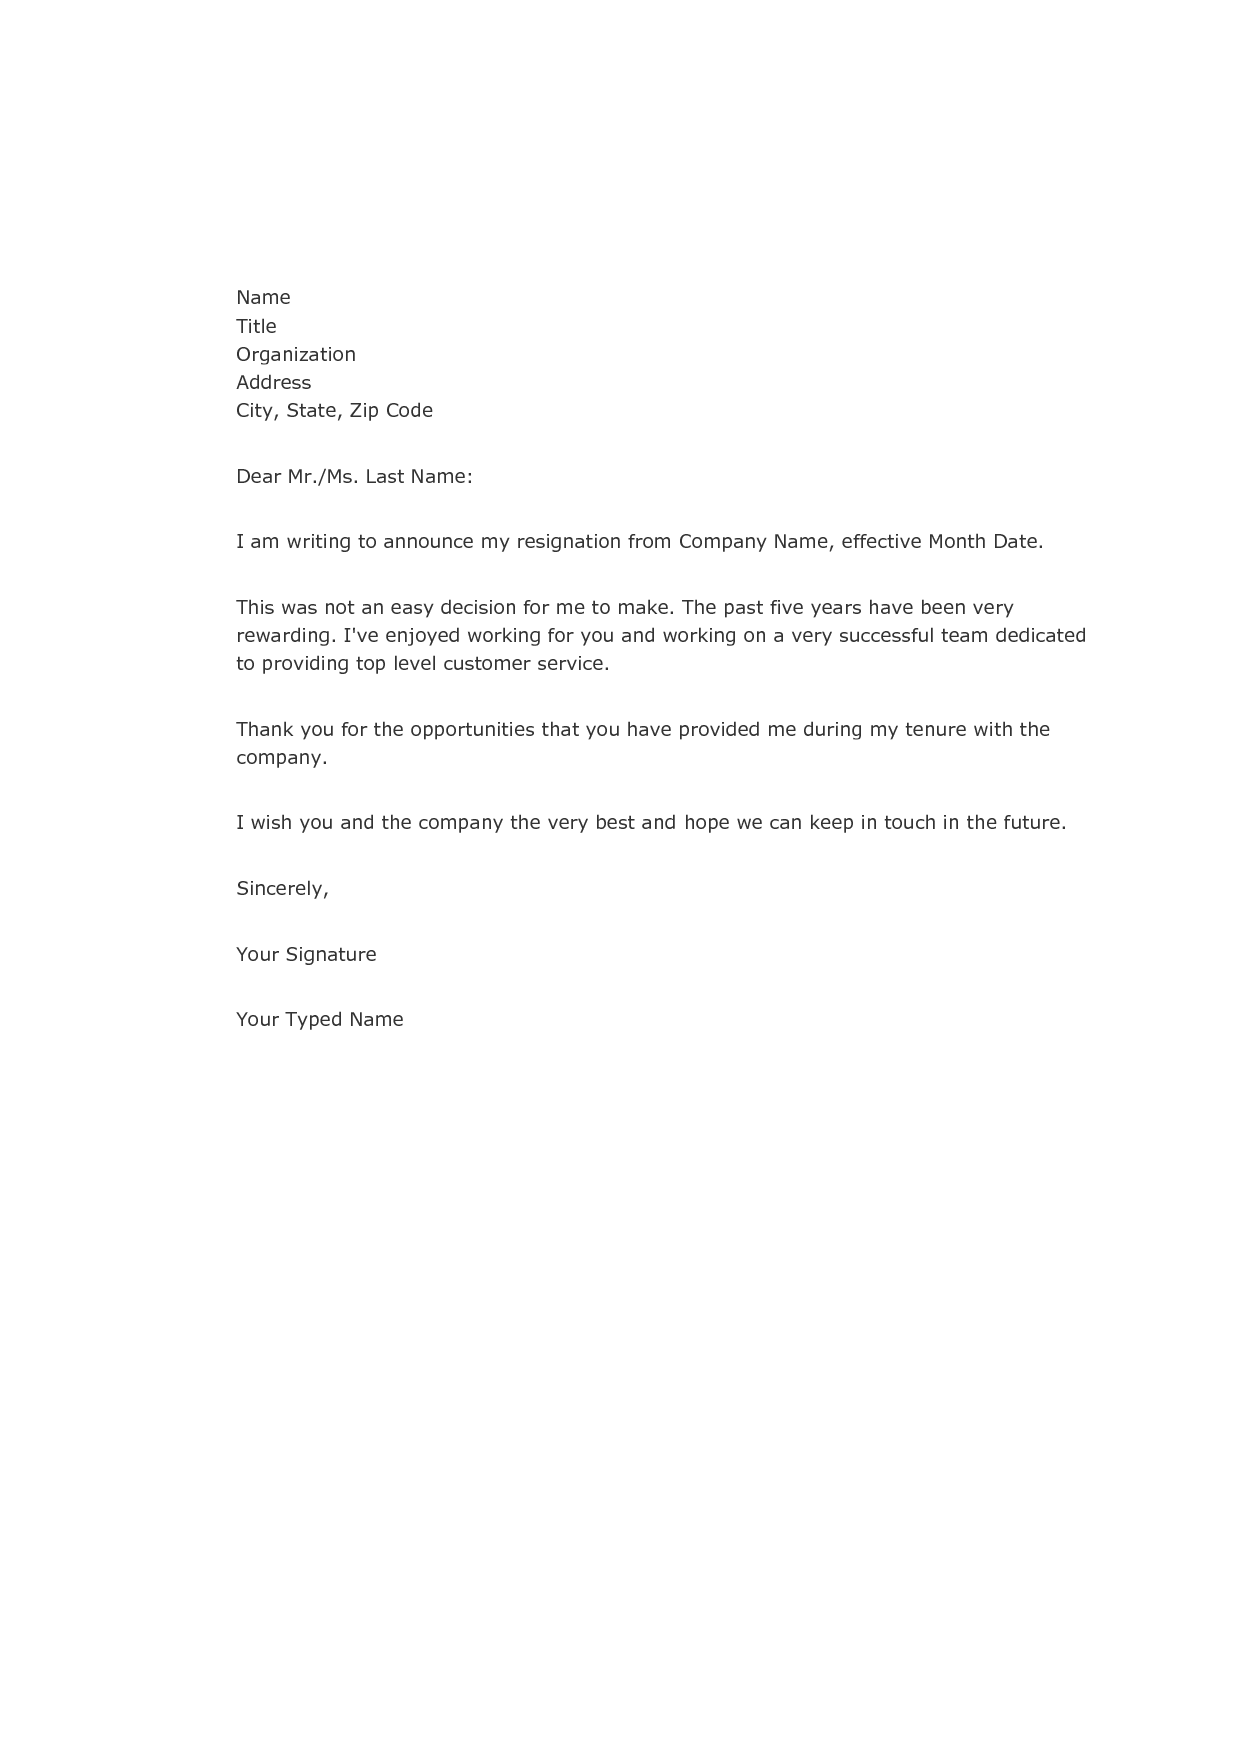 Sample of Resignation Letter to Employer